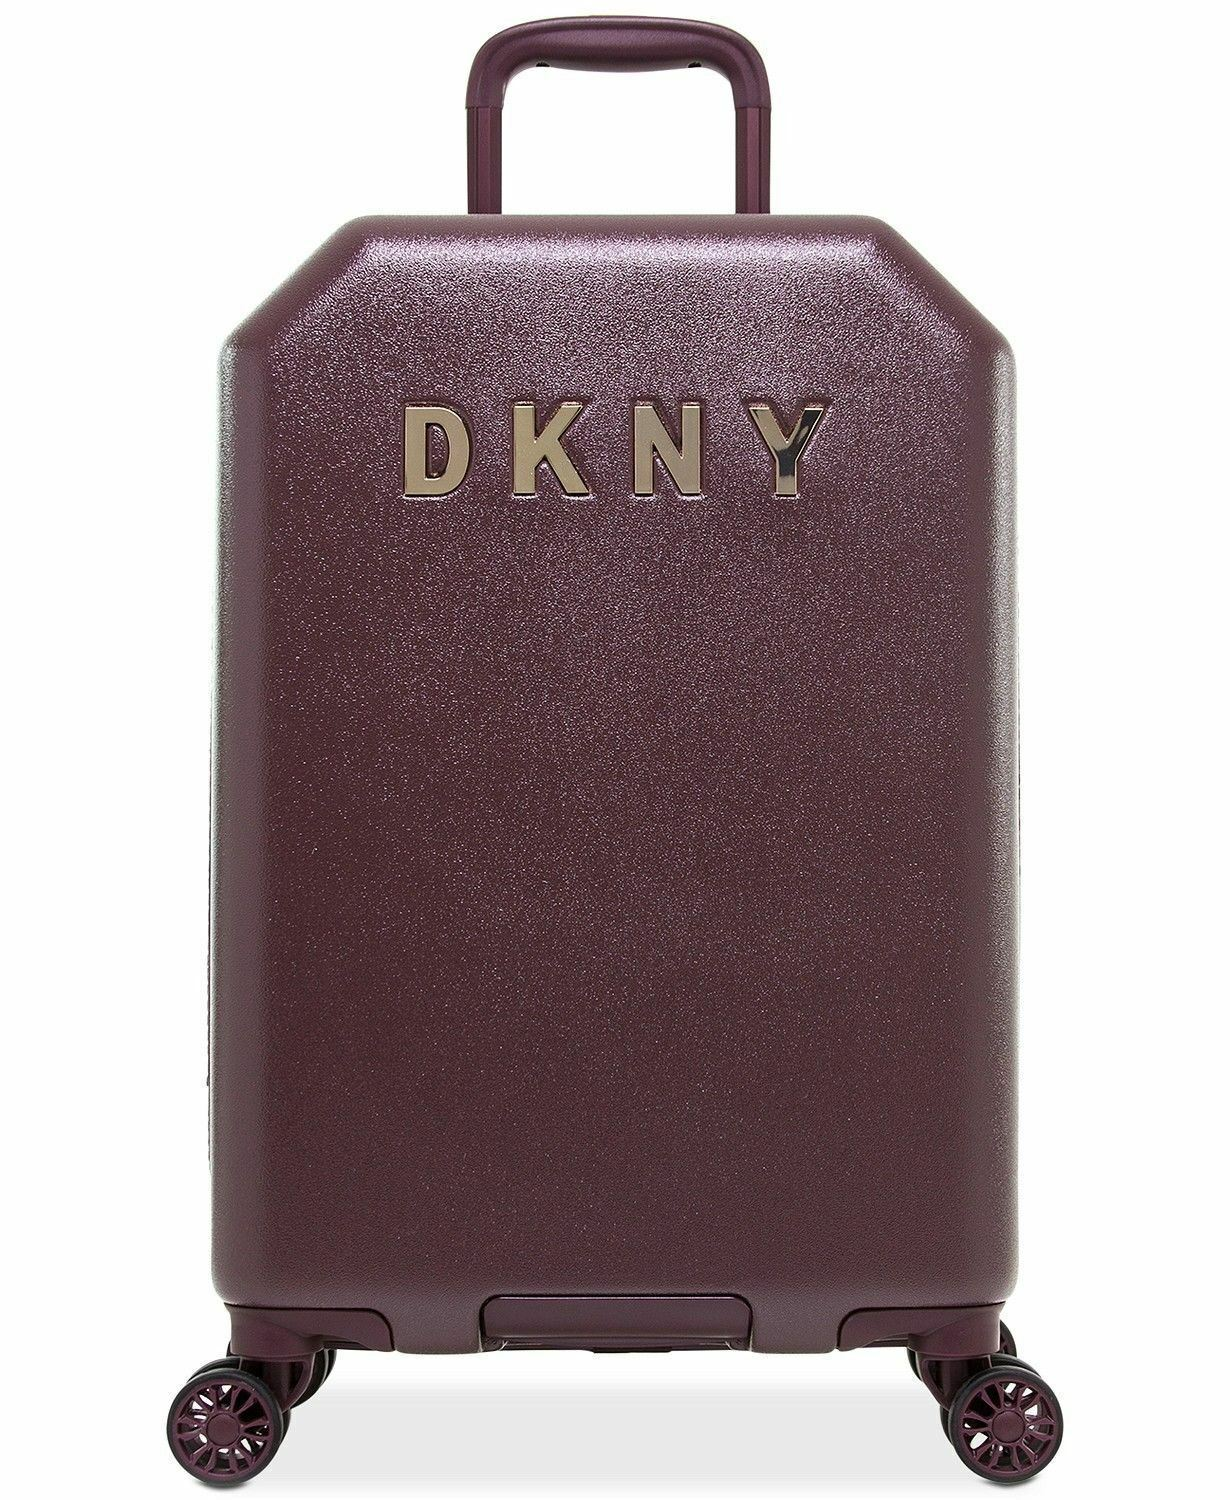 "DKNY Burgundy Allure 20"" Hardside Carry-On Spinner Suitcase"